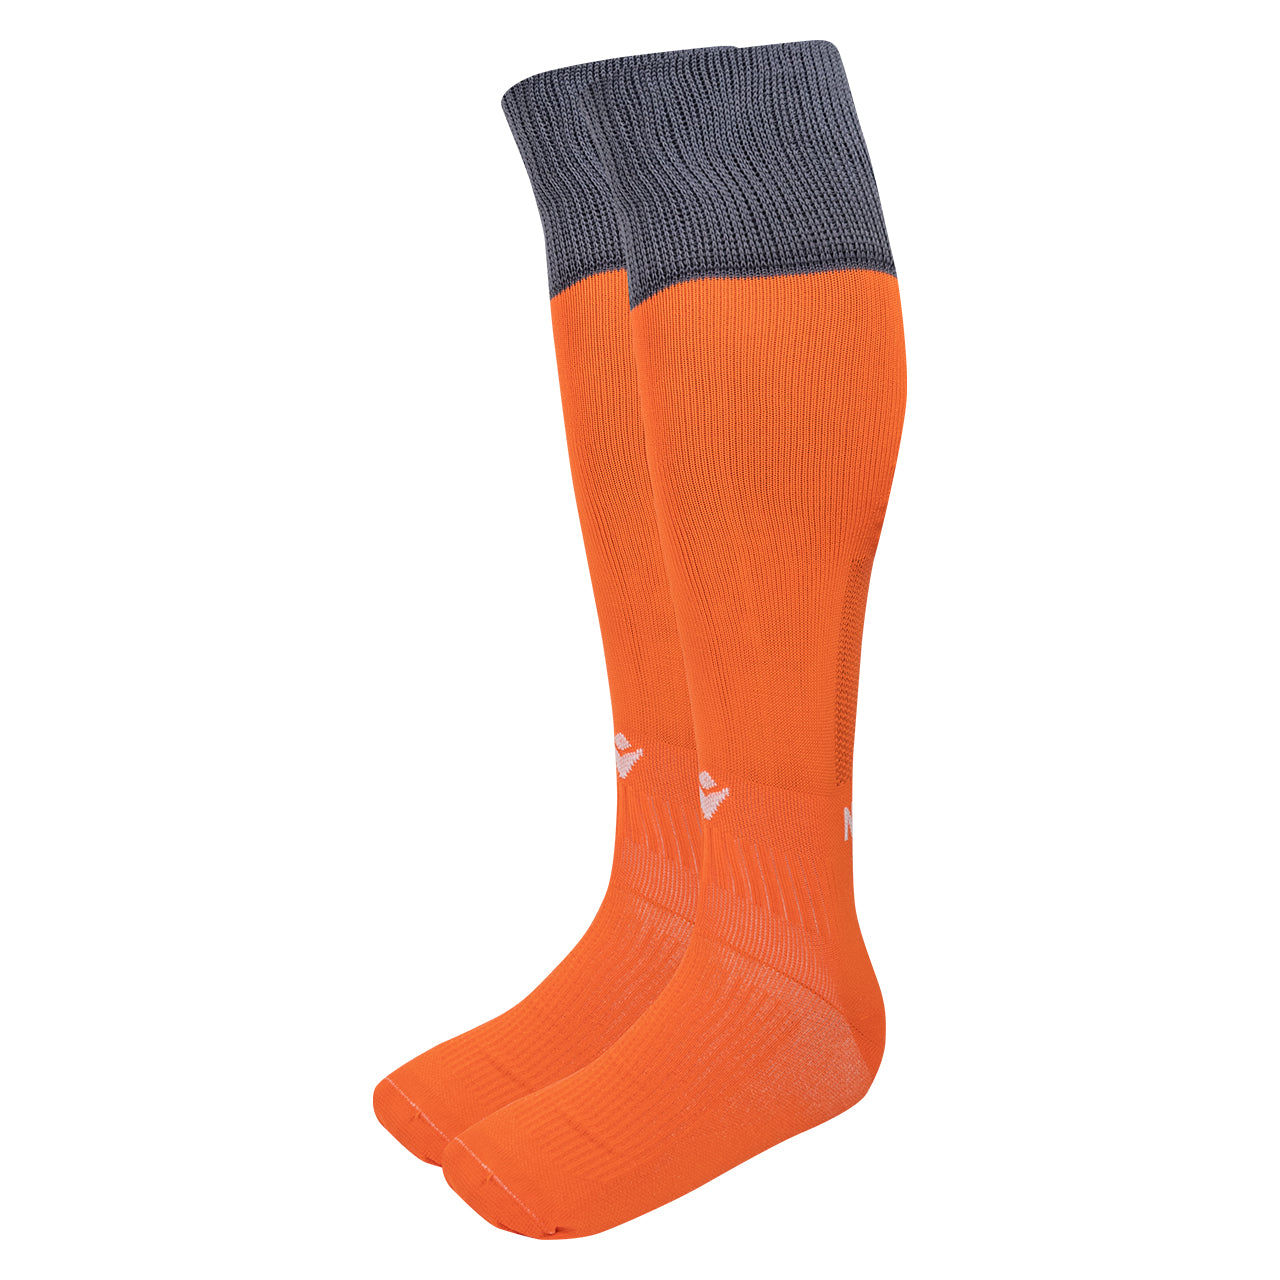 NFFC Mens Orange Goalkeeper Socks 2020/21